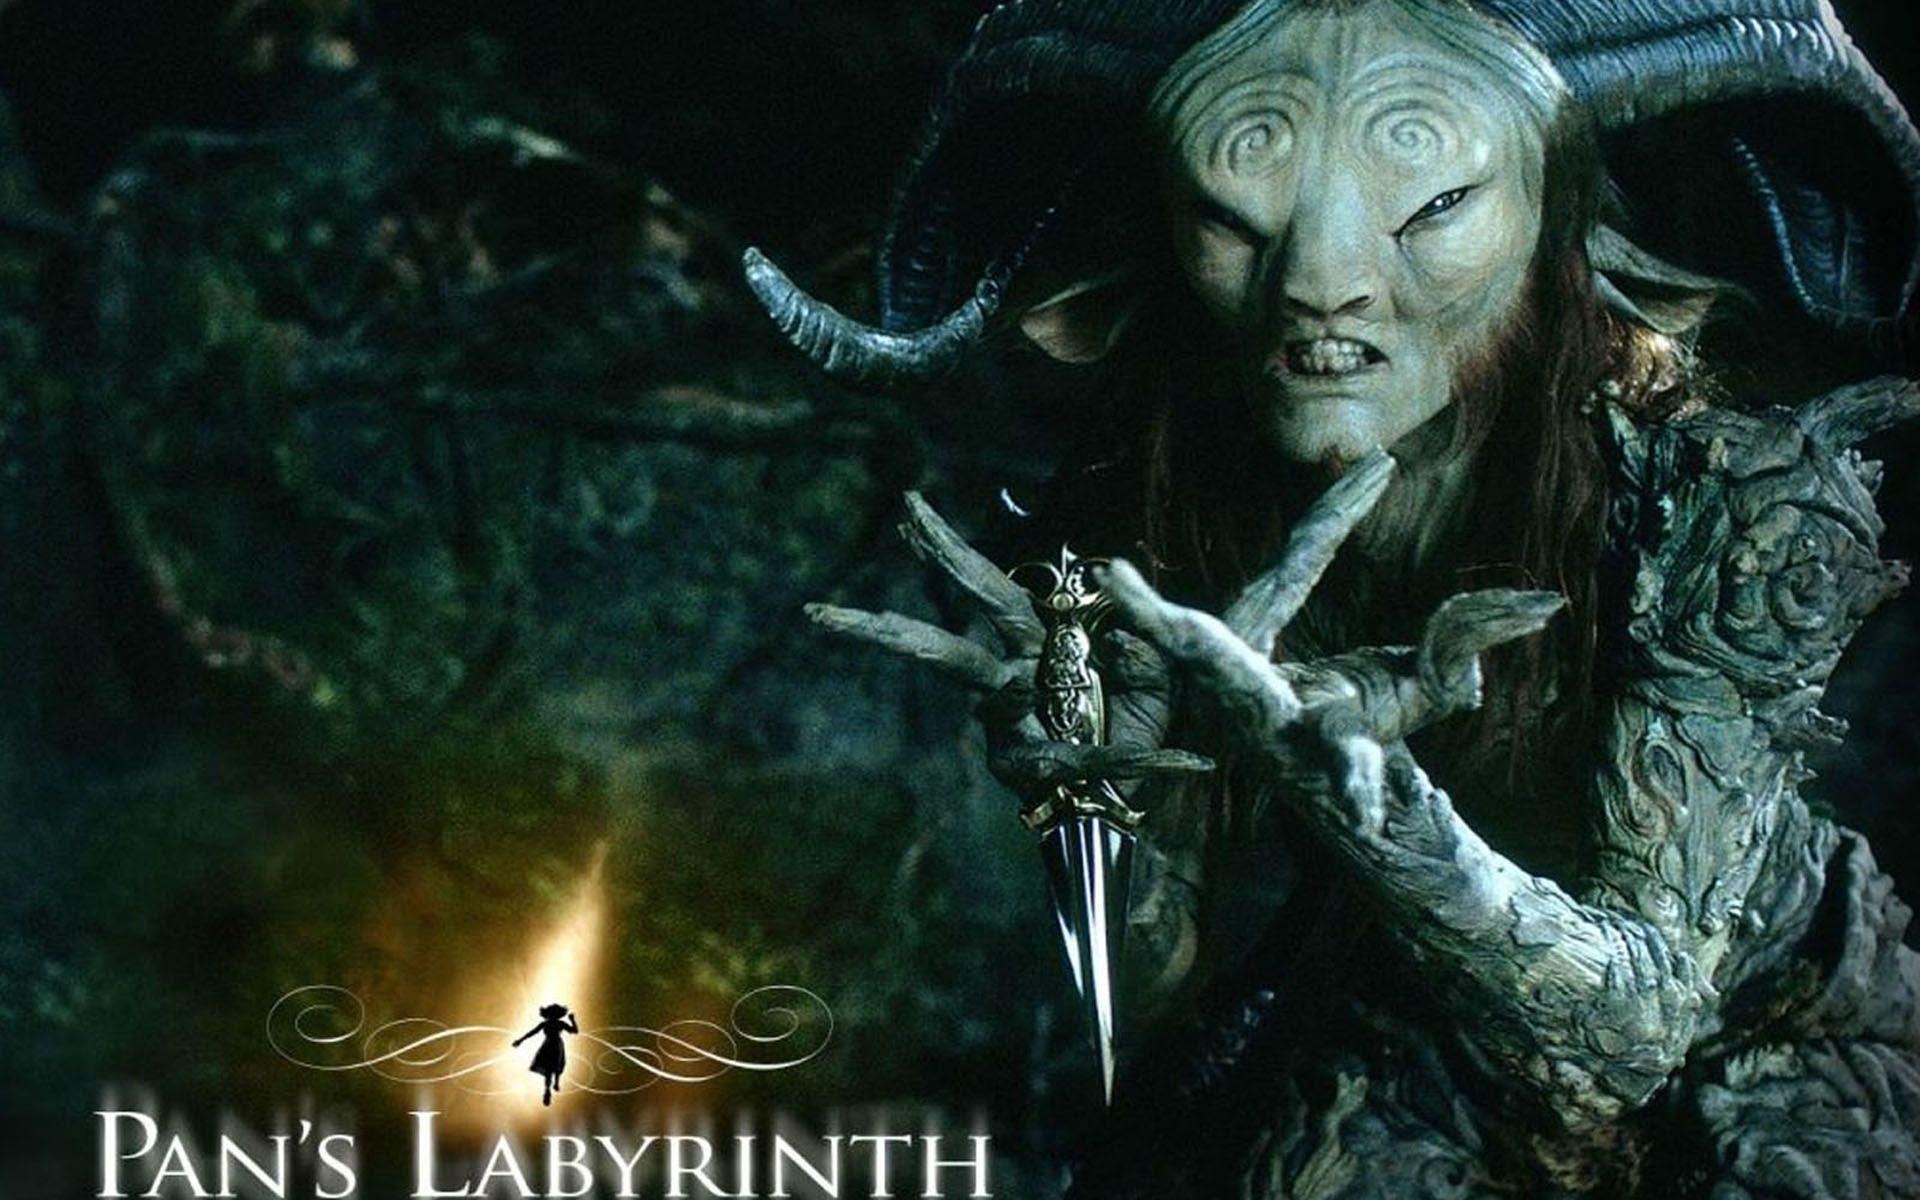 Labyrinth wallpapers wallpaper cave - Fresh pan s labyrinth wallpaper ...